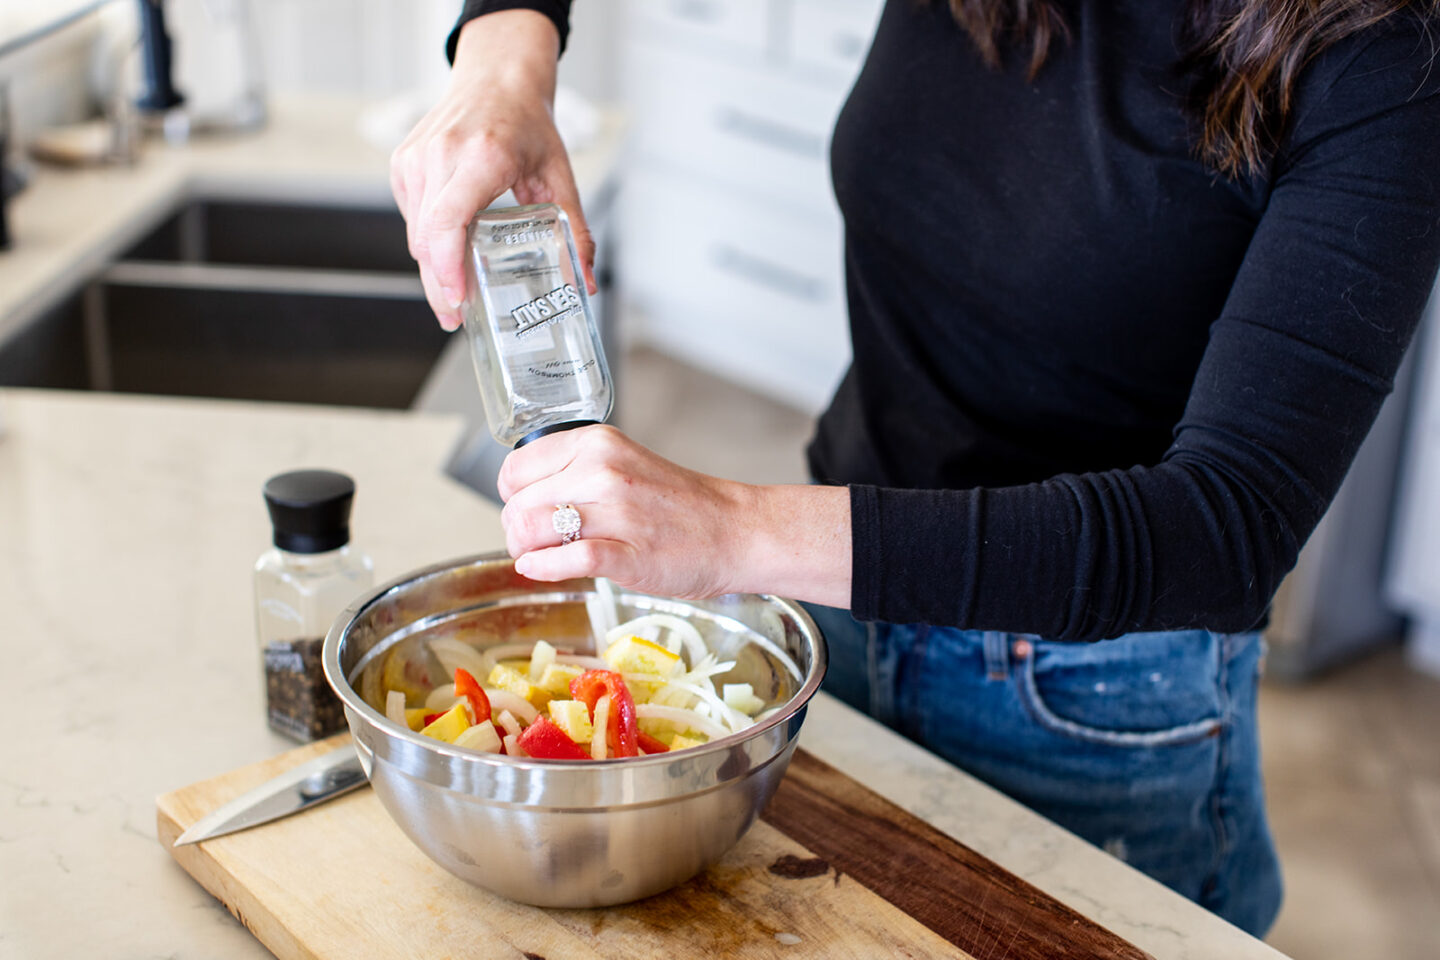 EASY Sheet Pan Roasted Vegetables Recipe featured by top Atlanta lifestyle blogger, Moderately High Maintenance |Pan Roasted Vegetables by popular Atlanta lifestyle blog, Moderately High Maintenance: image of a woman seasoning chopped vegetables in a metal bowl.